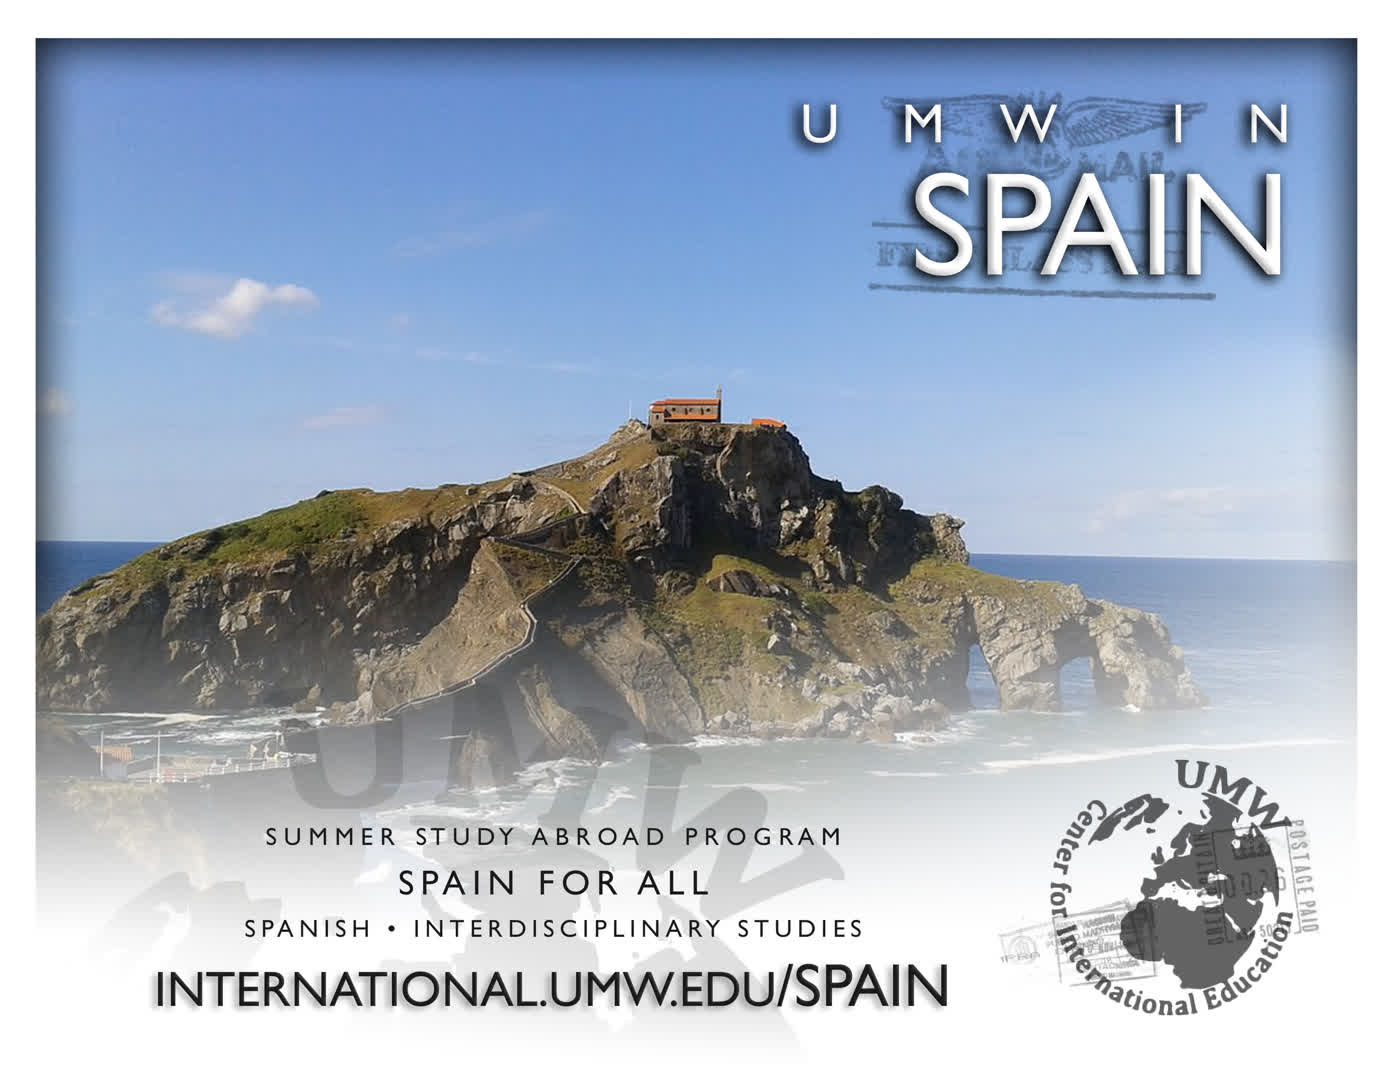 Information regarding UMW in Spain is as follows Create Your Own Tag: is #UMWabroad and Start date is August 24 2017 and End Date is May 07 2018 and File is Browse and Group Name is Center for International Education and Email is cie@umw.edu and Affiliation is Department and File Name is SpainMiniPoster2018_comp-NEW_comp.jpg and Panel is Main and Name is Sarah Moran and Name of Ad/Event is UMW in Spain and